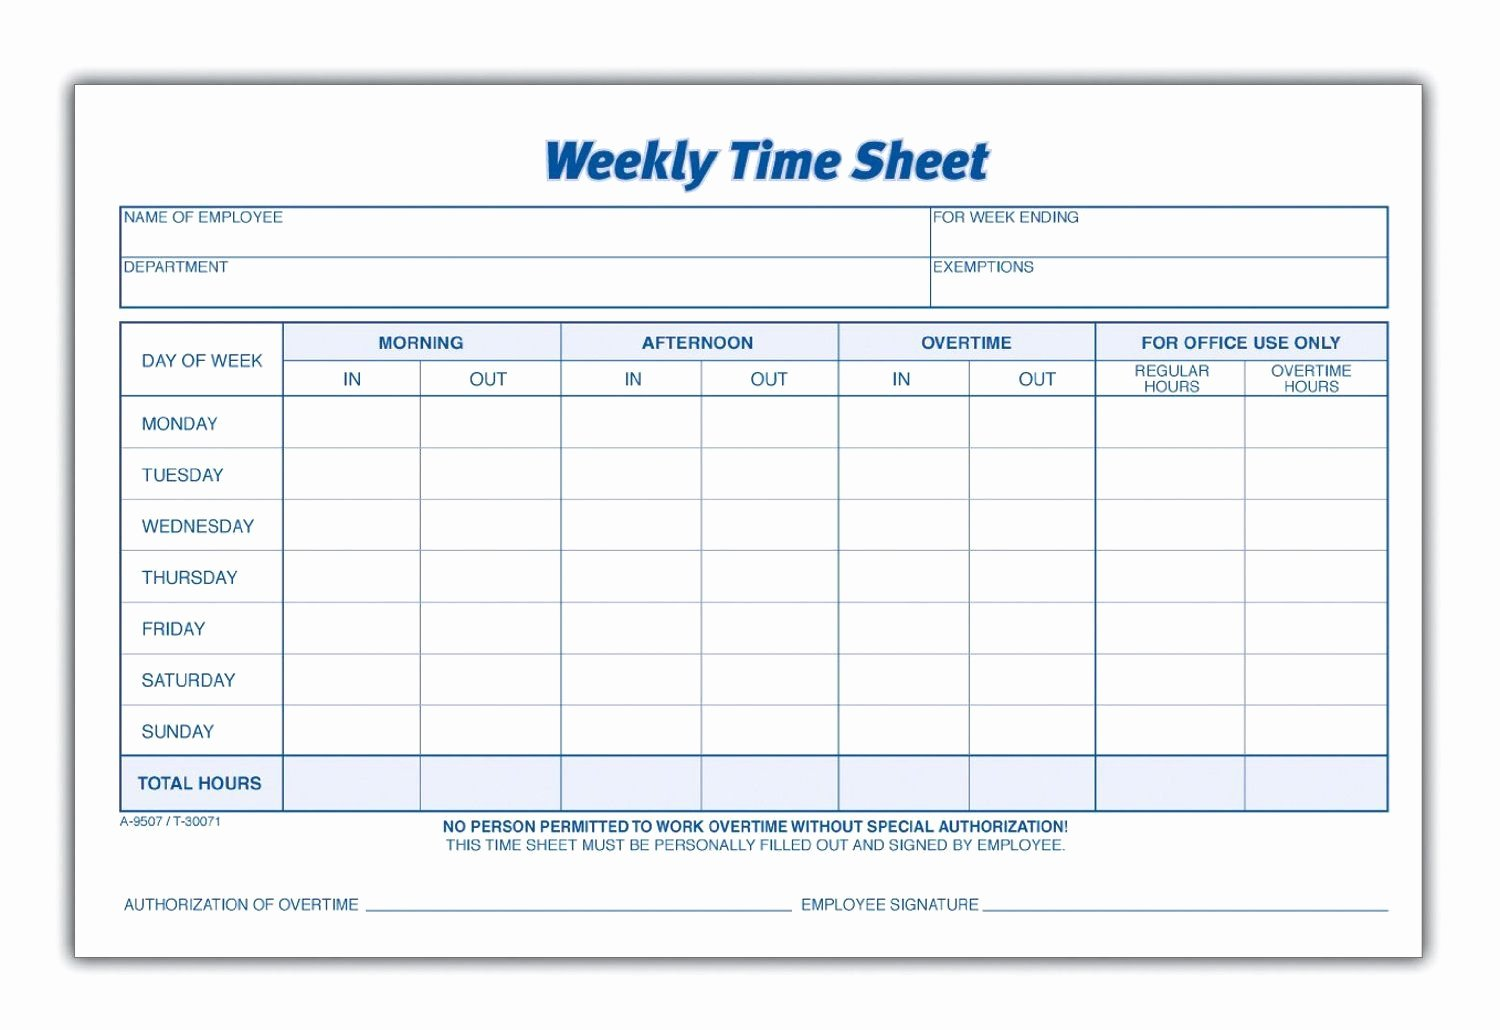 Work Time Sheet Template Awesome Weekly Employee Time Sheet Projects to Try